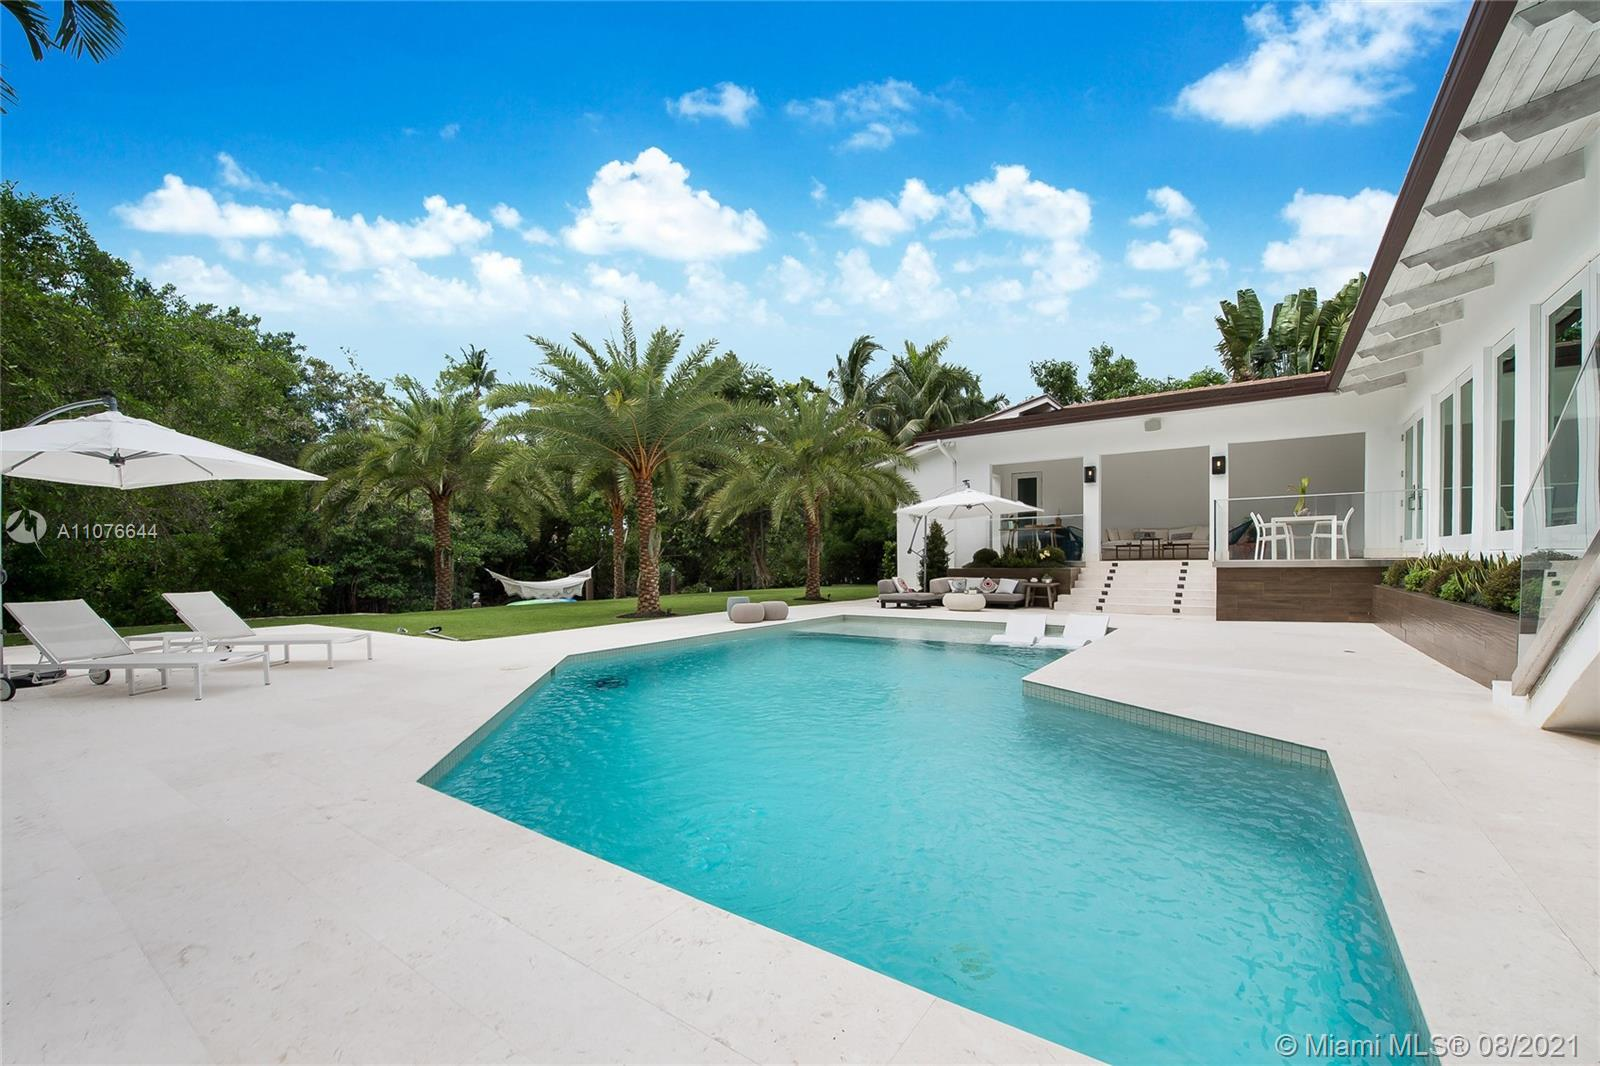 Newly renovated waterfront home nested in the gorgeous gated community of Cocoplum. This luxurious home includes 5 bedrooms, 6.5 bathrooms, 2 separate rooms for office and/or family use, with marble flooring throughout. The main bedroom offers private access to a beautiful outdoor space and pool. The gas stove kitchen boasts top of the line appliances, a spacious breakfast area and custom-made cabinets. An enclosed 2 car garage and 80 foot dock are sure to please the most passionate car and boat enthusiasts. Located within a ten minute drive of the best schools in Miami, gourmet restaurants and live entertainment, this waterfront property is the ideal family home while offering the best entertainment Miami has to offer and direct access to the open seas.